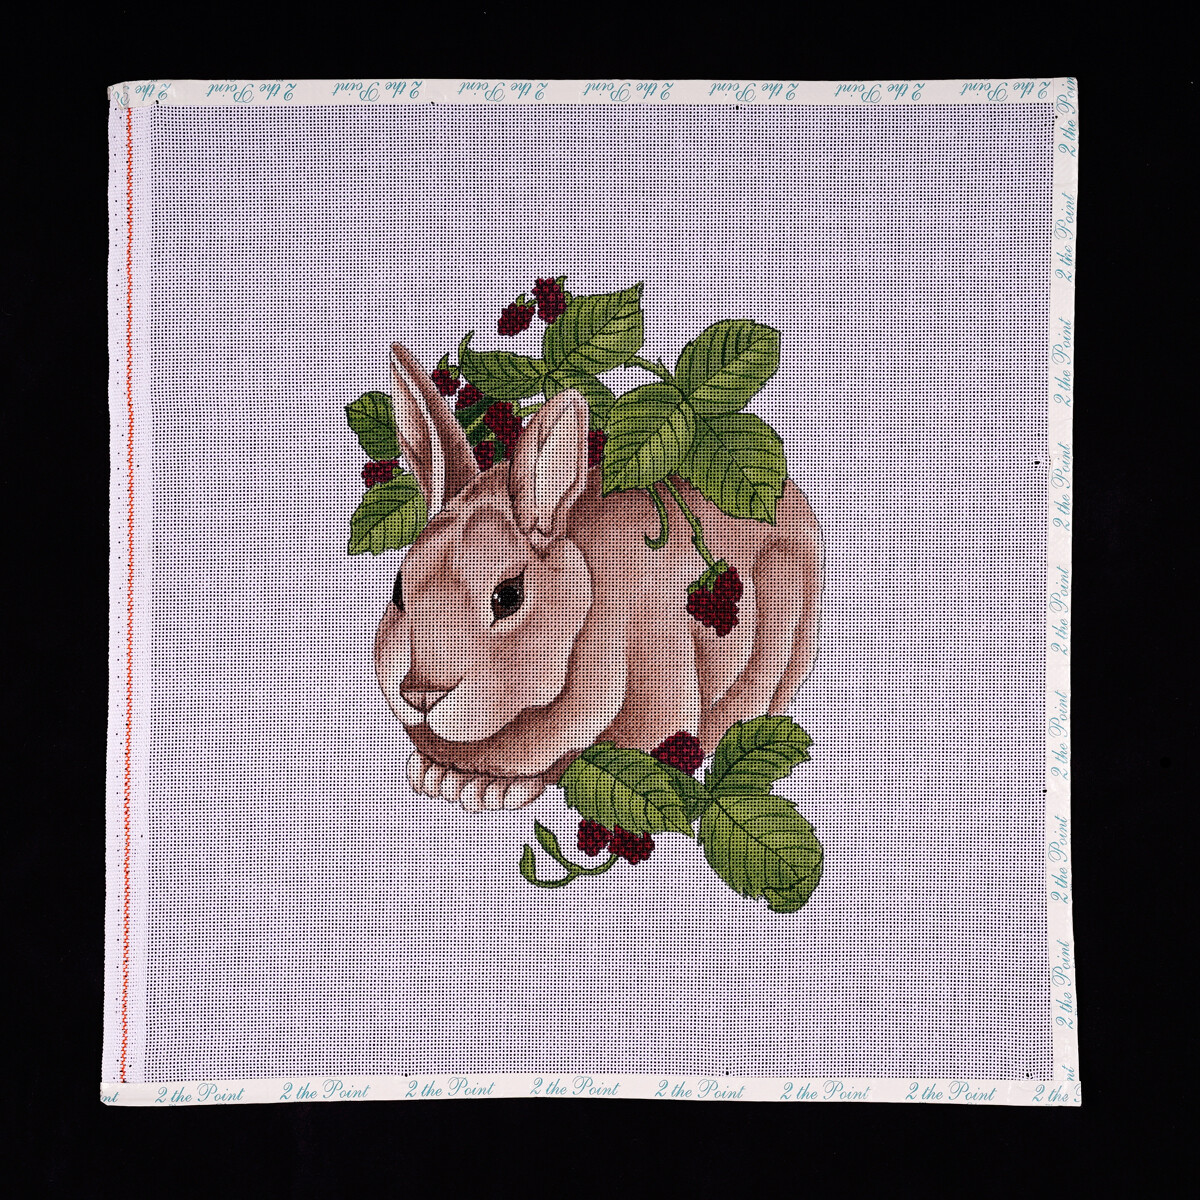 Sunrunner, Bunny with Rasberries-      Discontinued